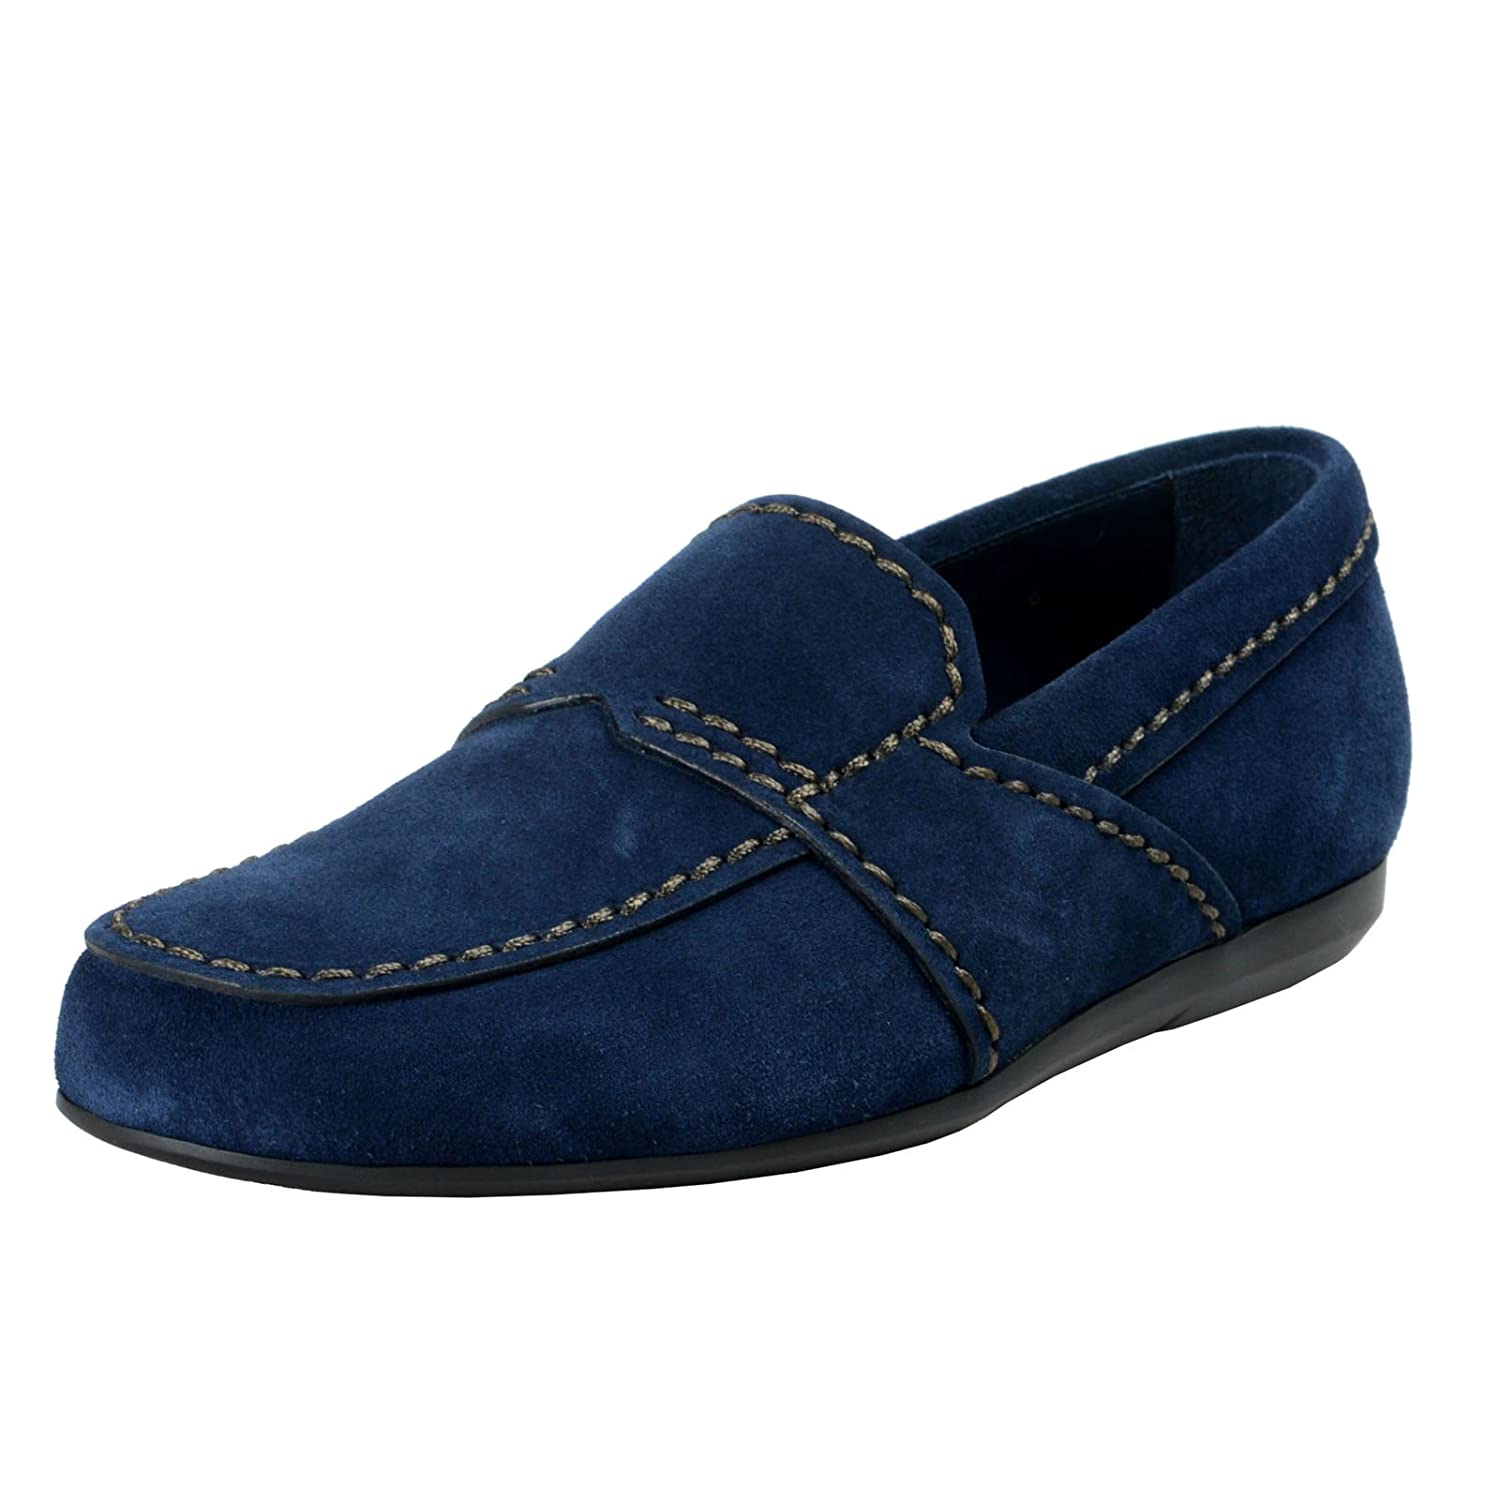 c19485fb8a6 ... low cost amazon prada mens blue suede leather loafers slip on shoes sz  us 11 eu